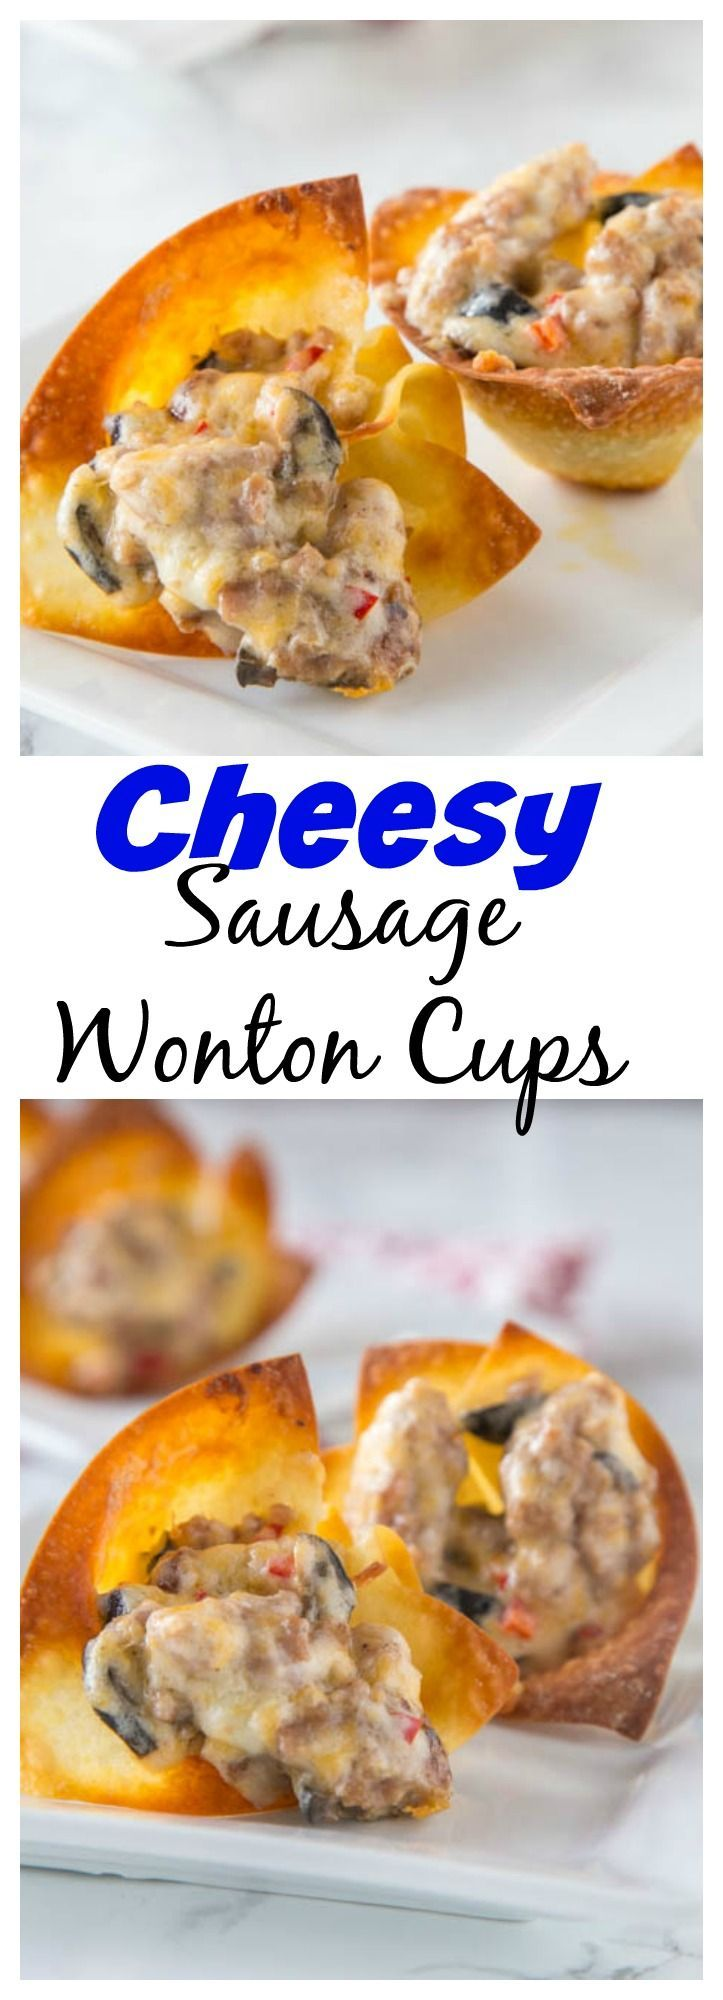 Cheesy Sausage Wonton Cups – Baked crispy wonton cups filled with a cheesy sausage mixture and baked until bubbly and hot.  Great for any party, get together, or just because!